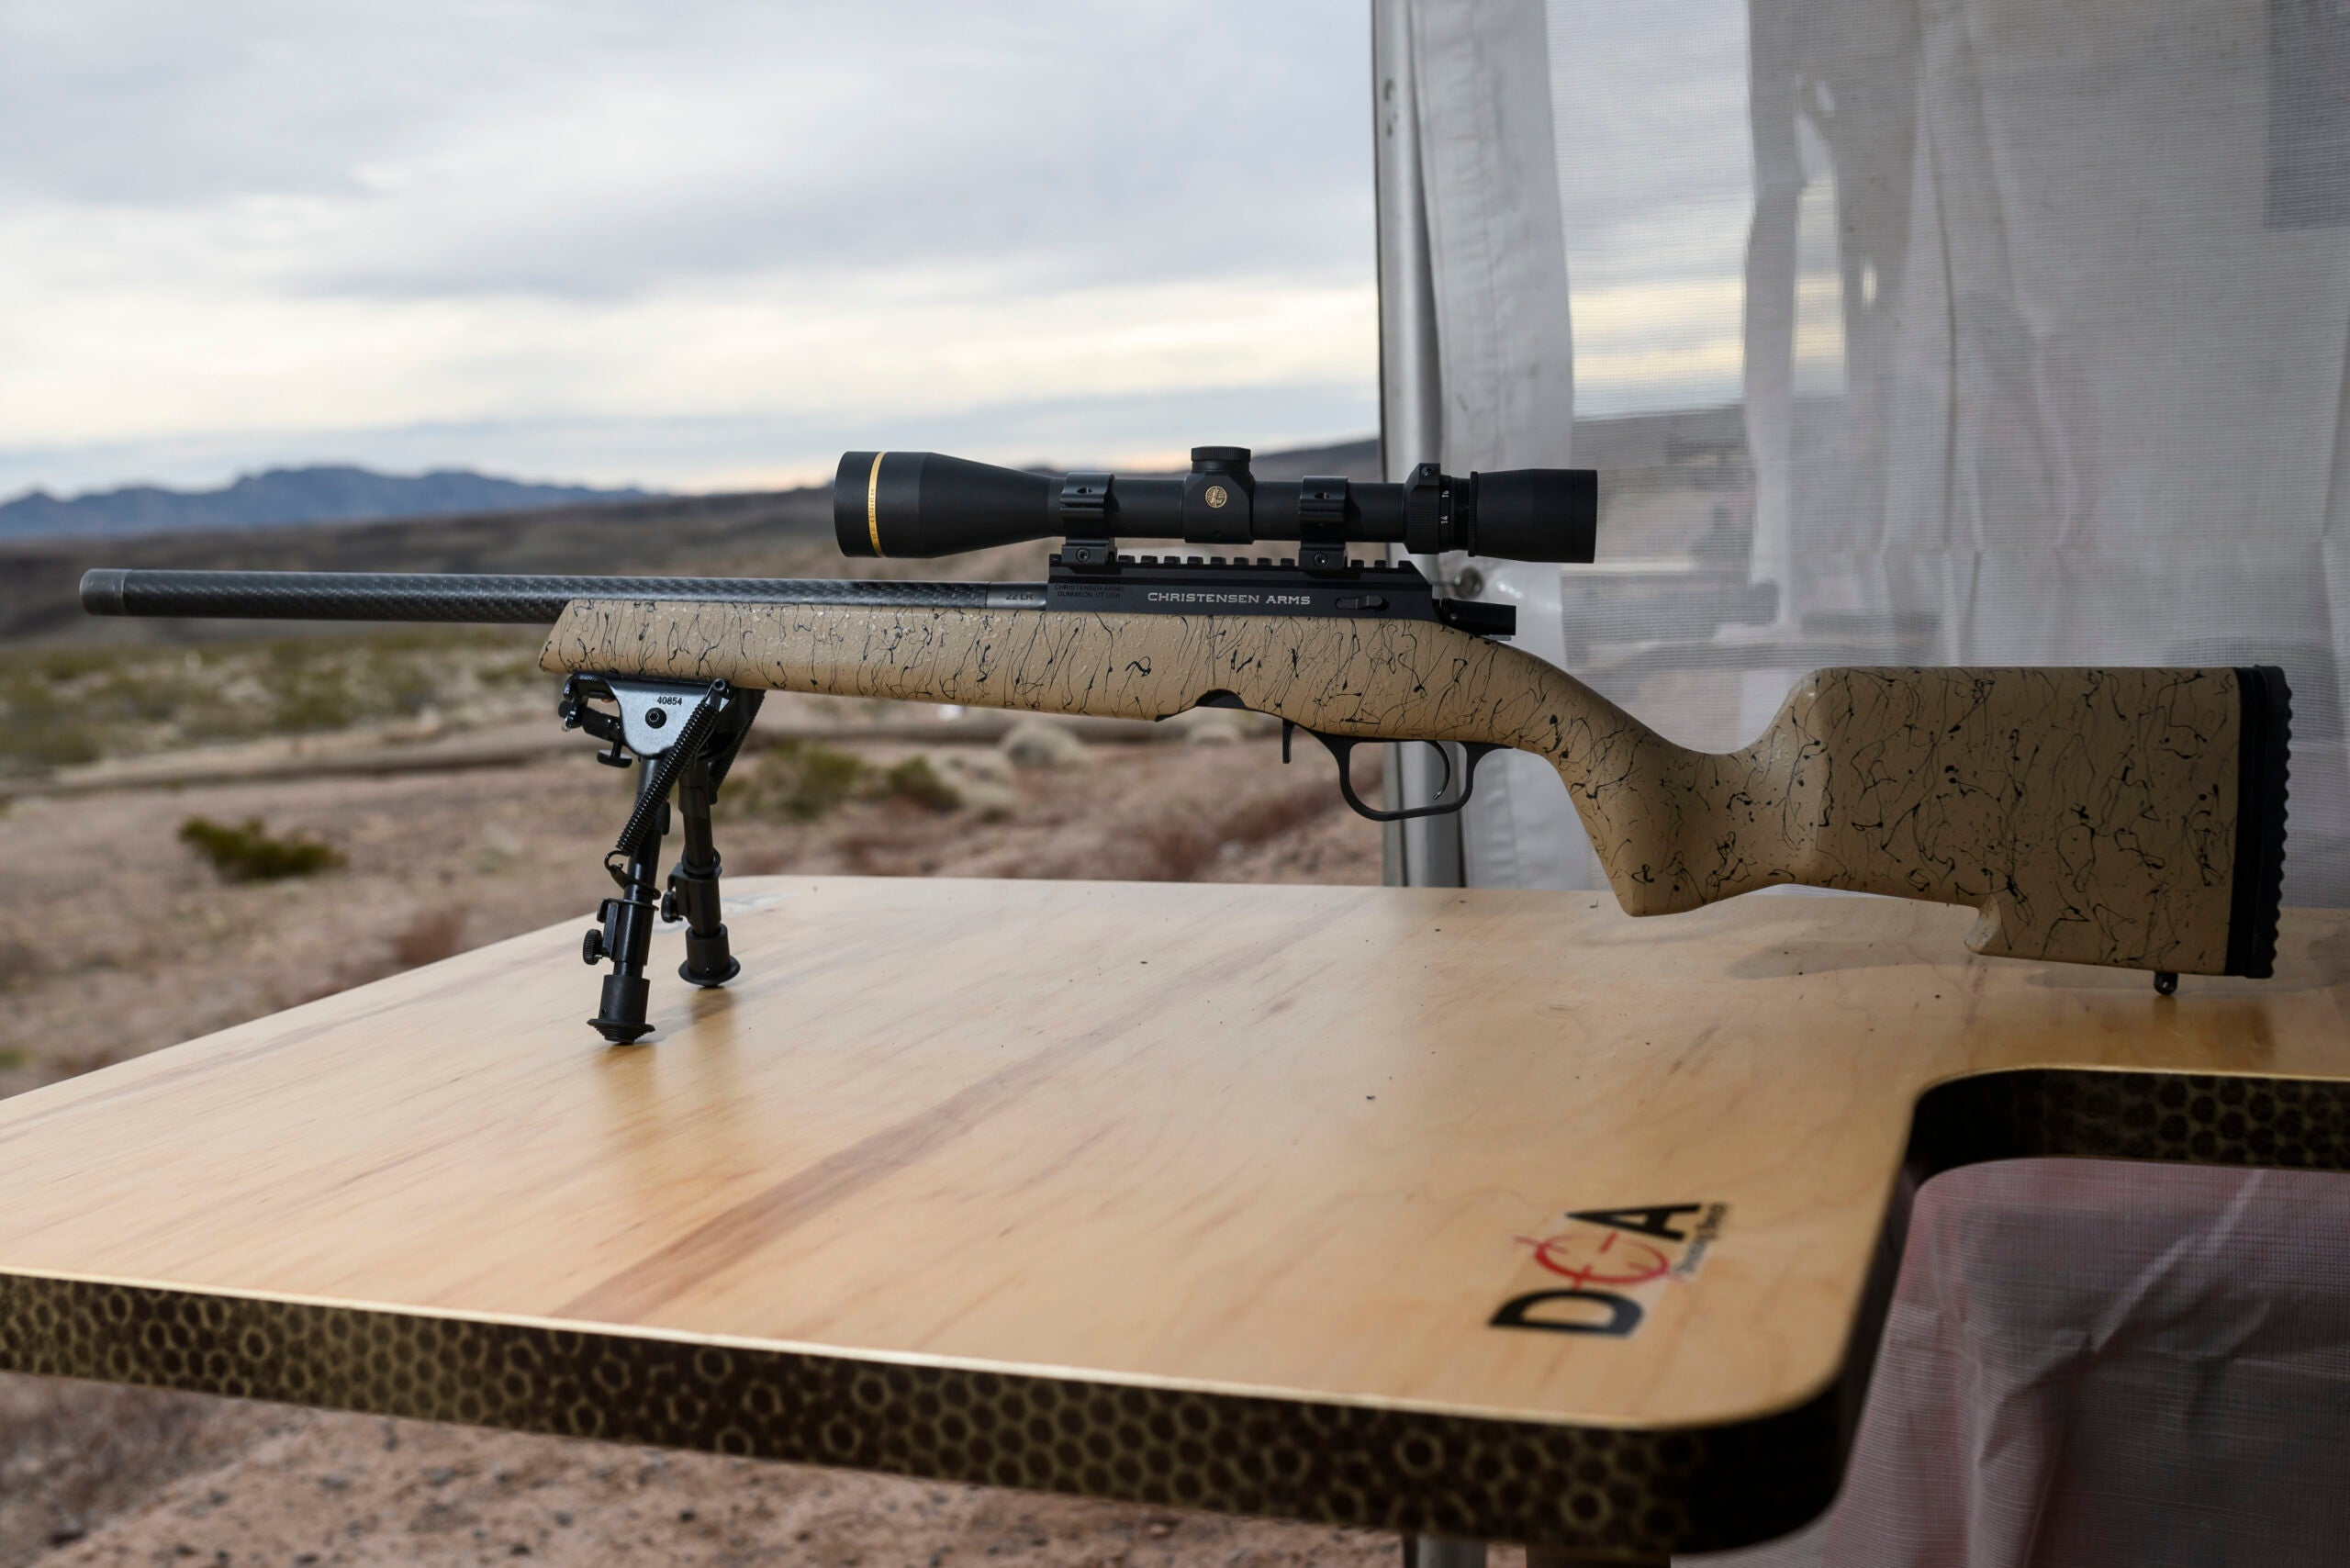 A tan Christensen Arms rimfire rifle with a scope sitting on a DOA shooting bench